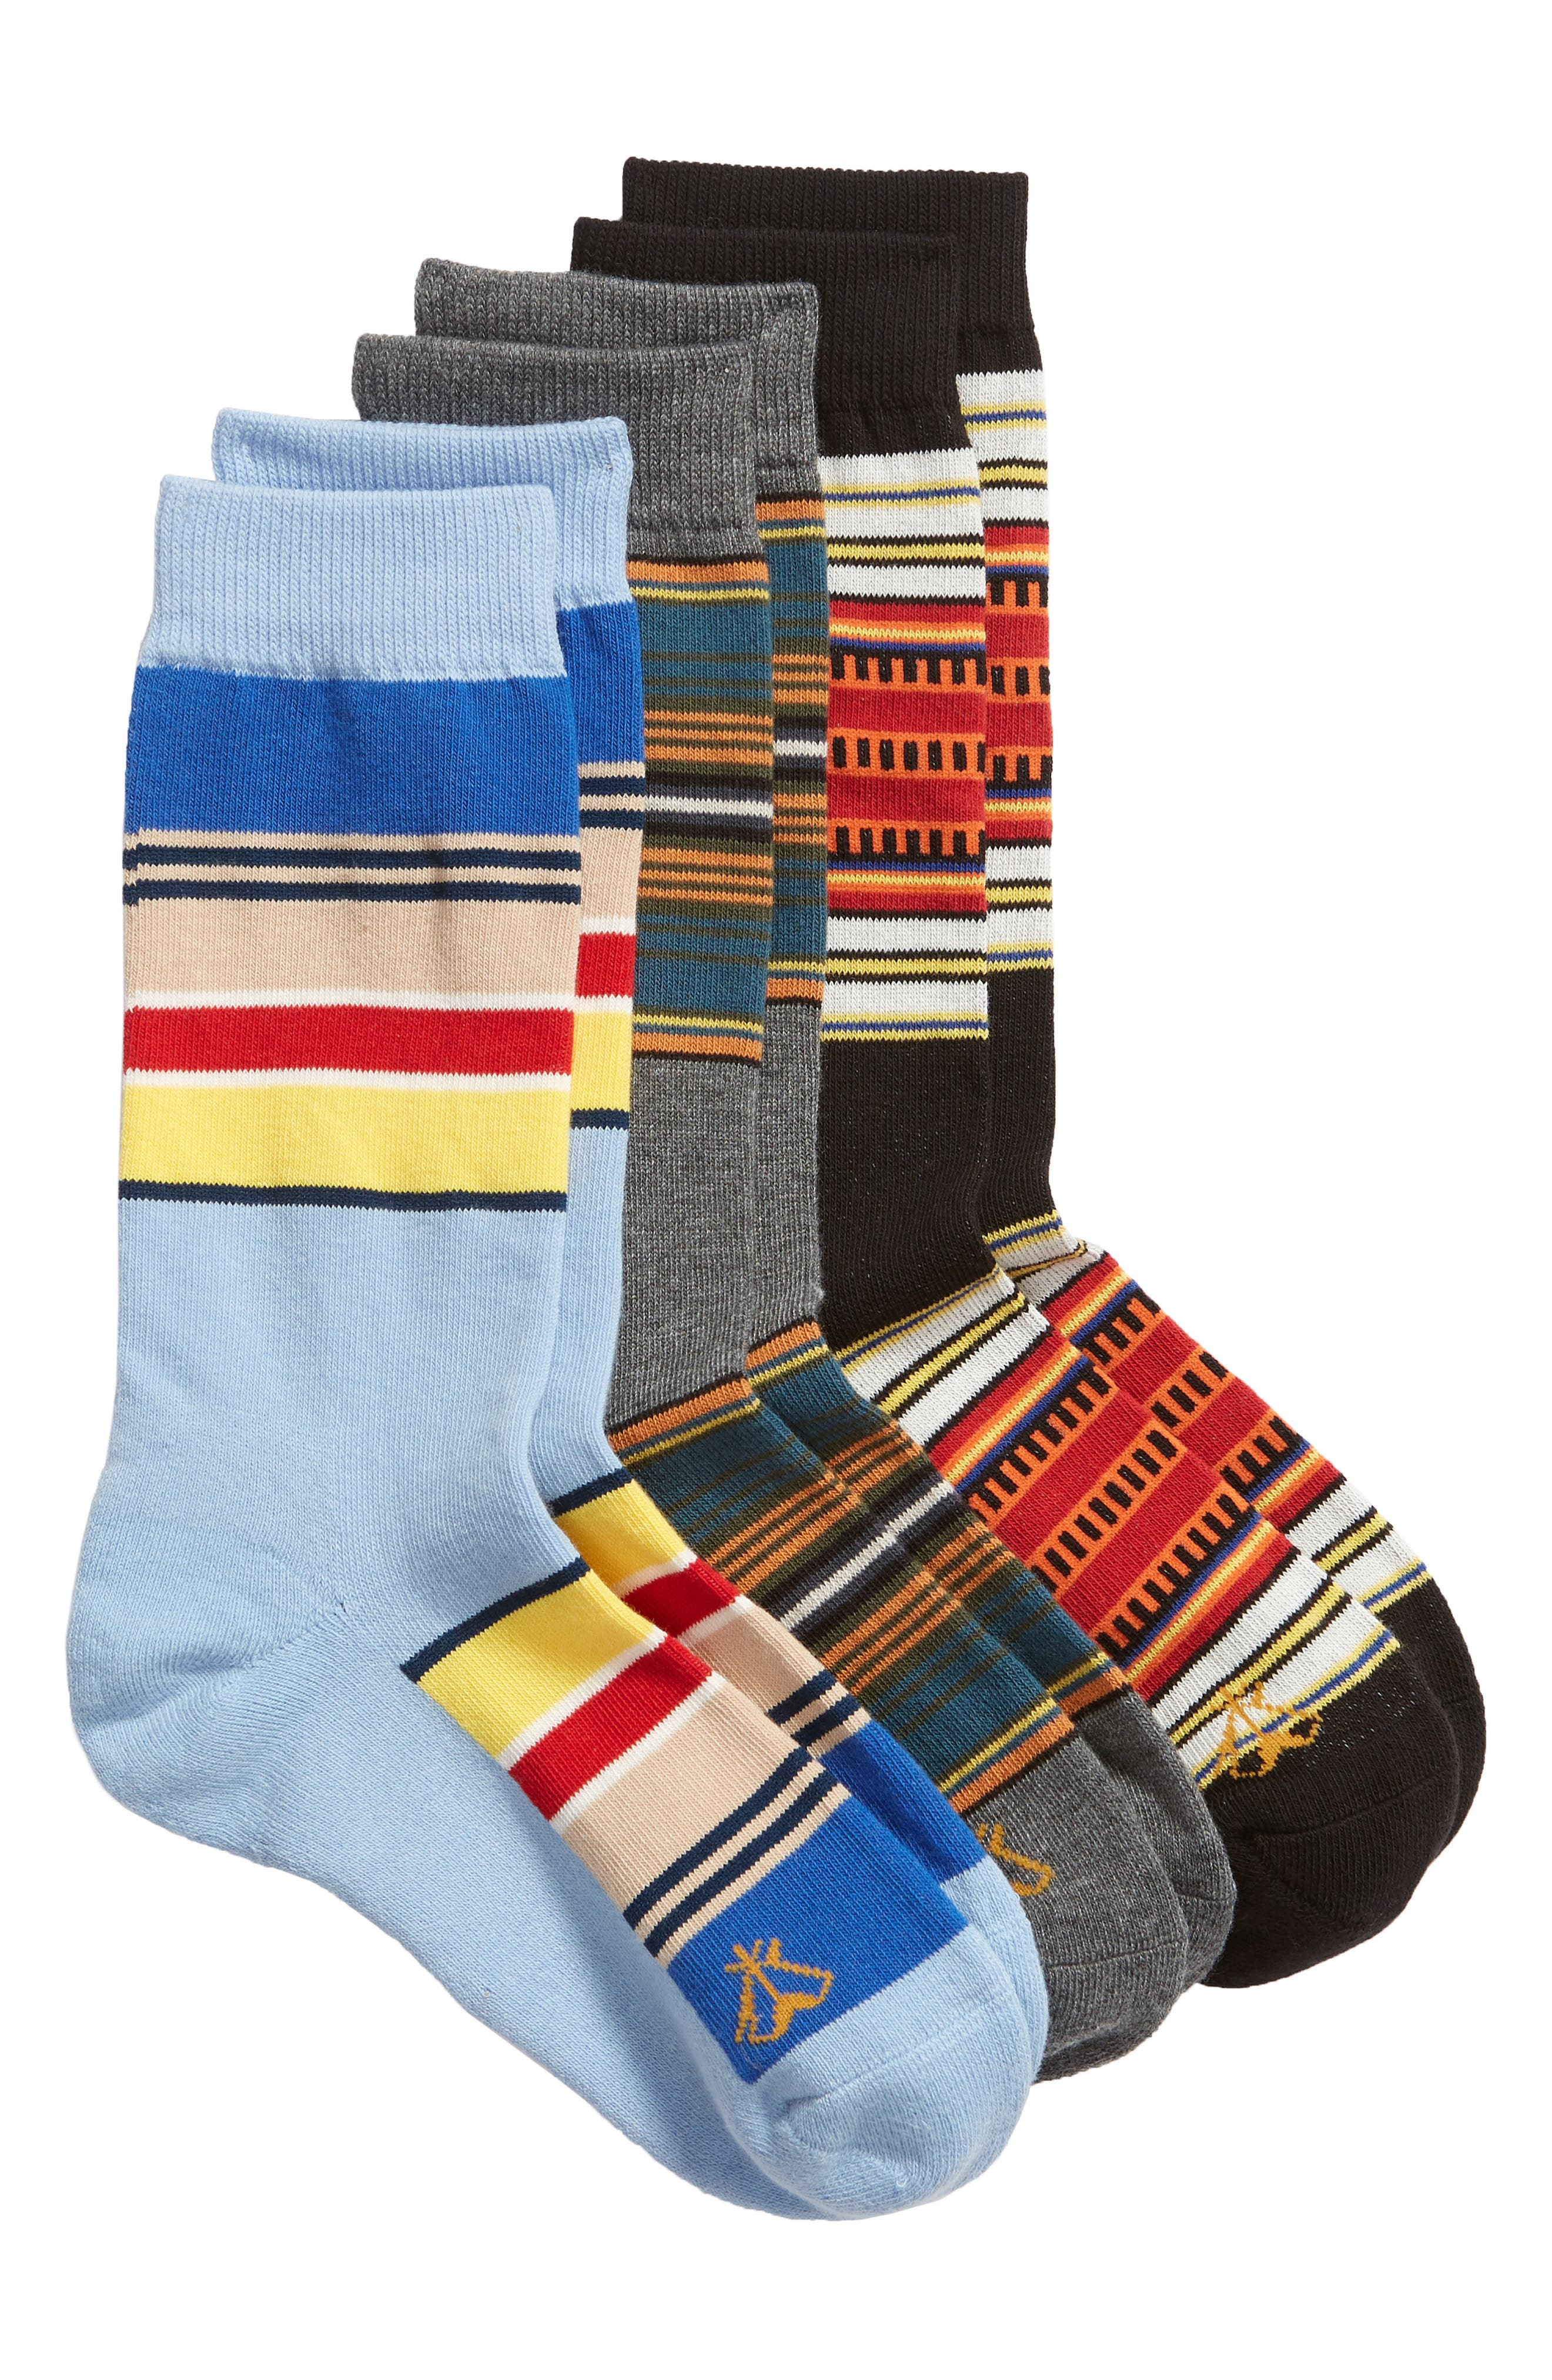 PENDLETON National Park 3-Pack Crew Socks Gift Box in Assorted Bright